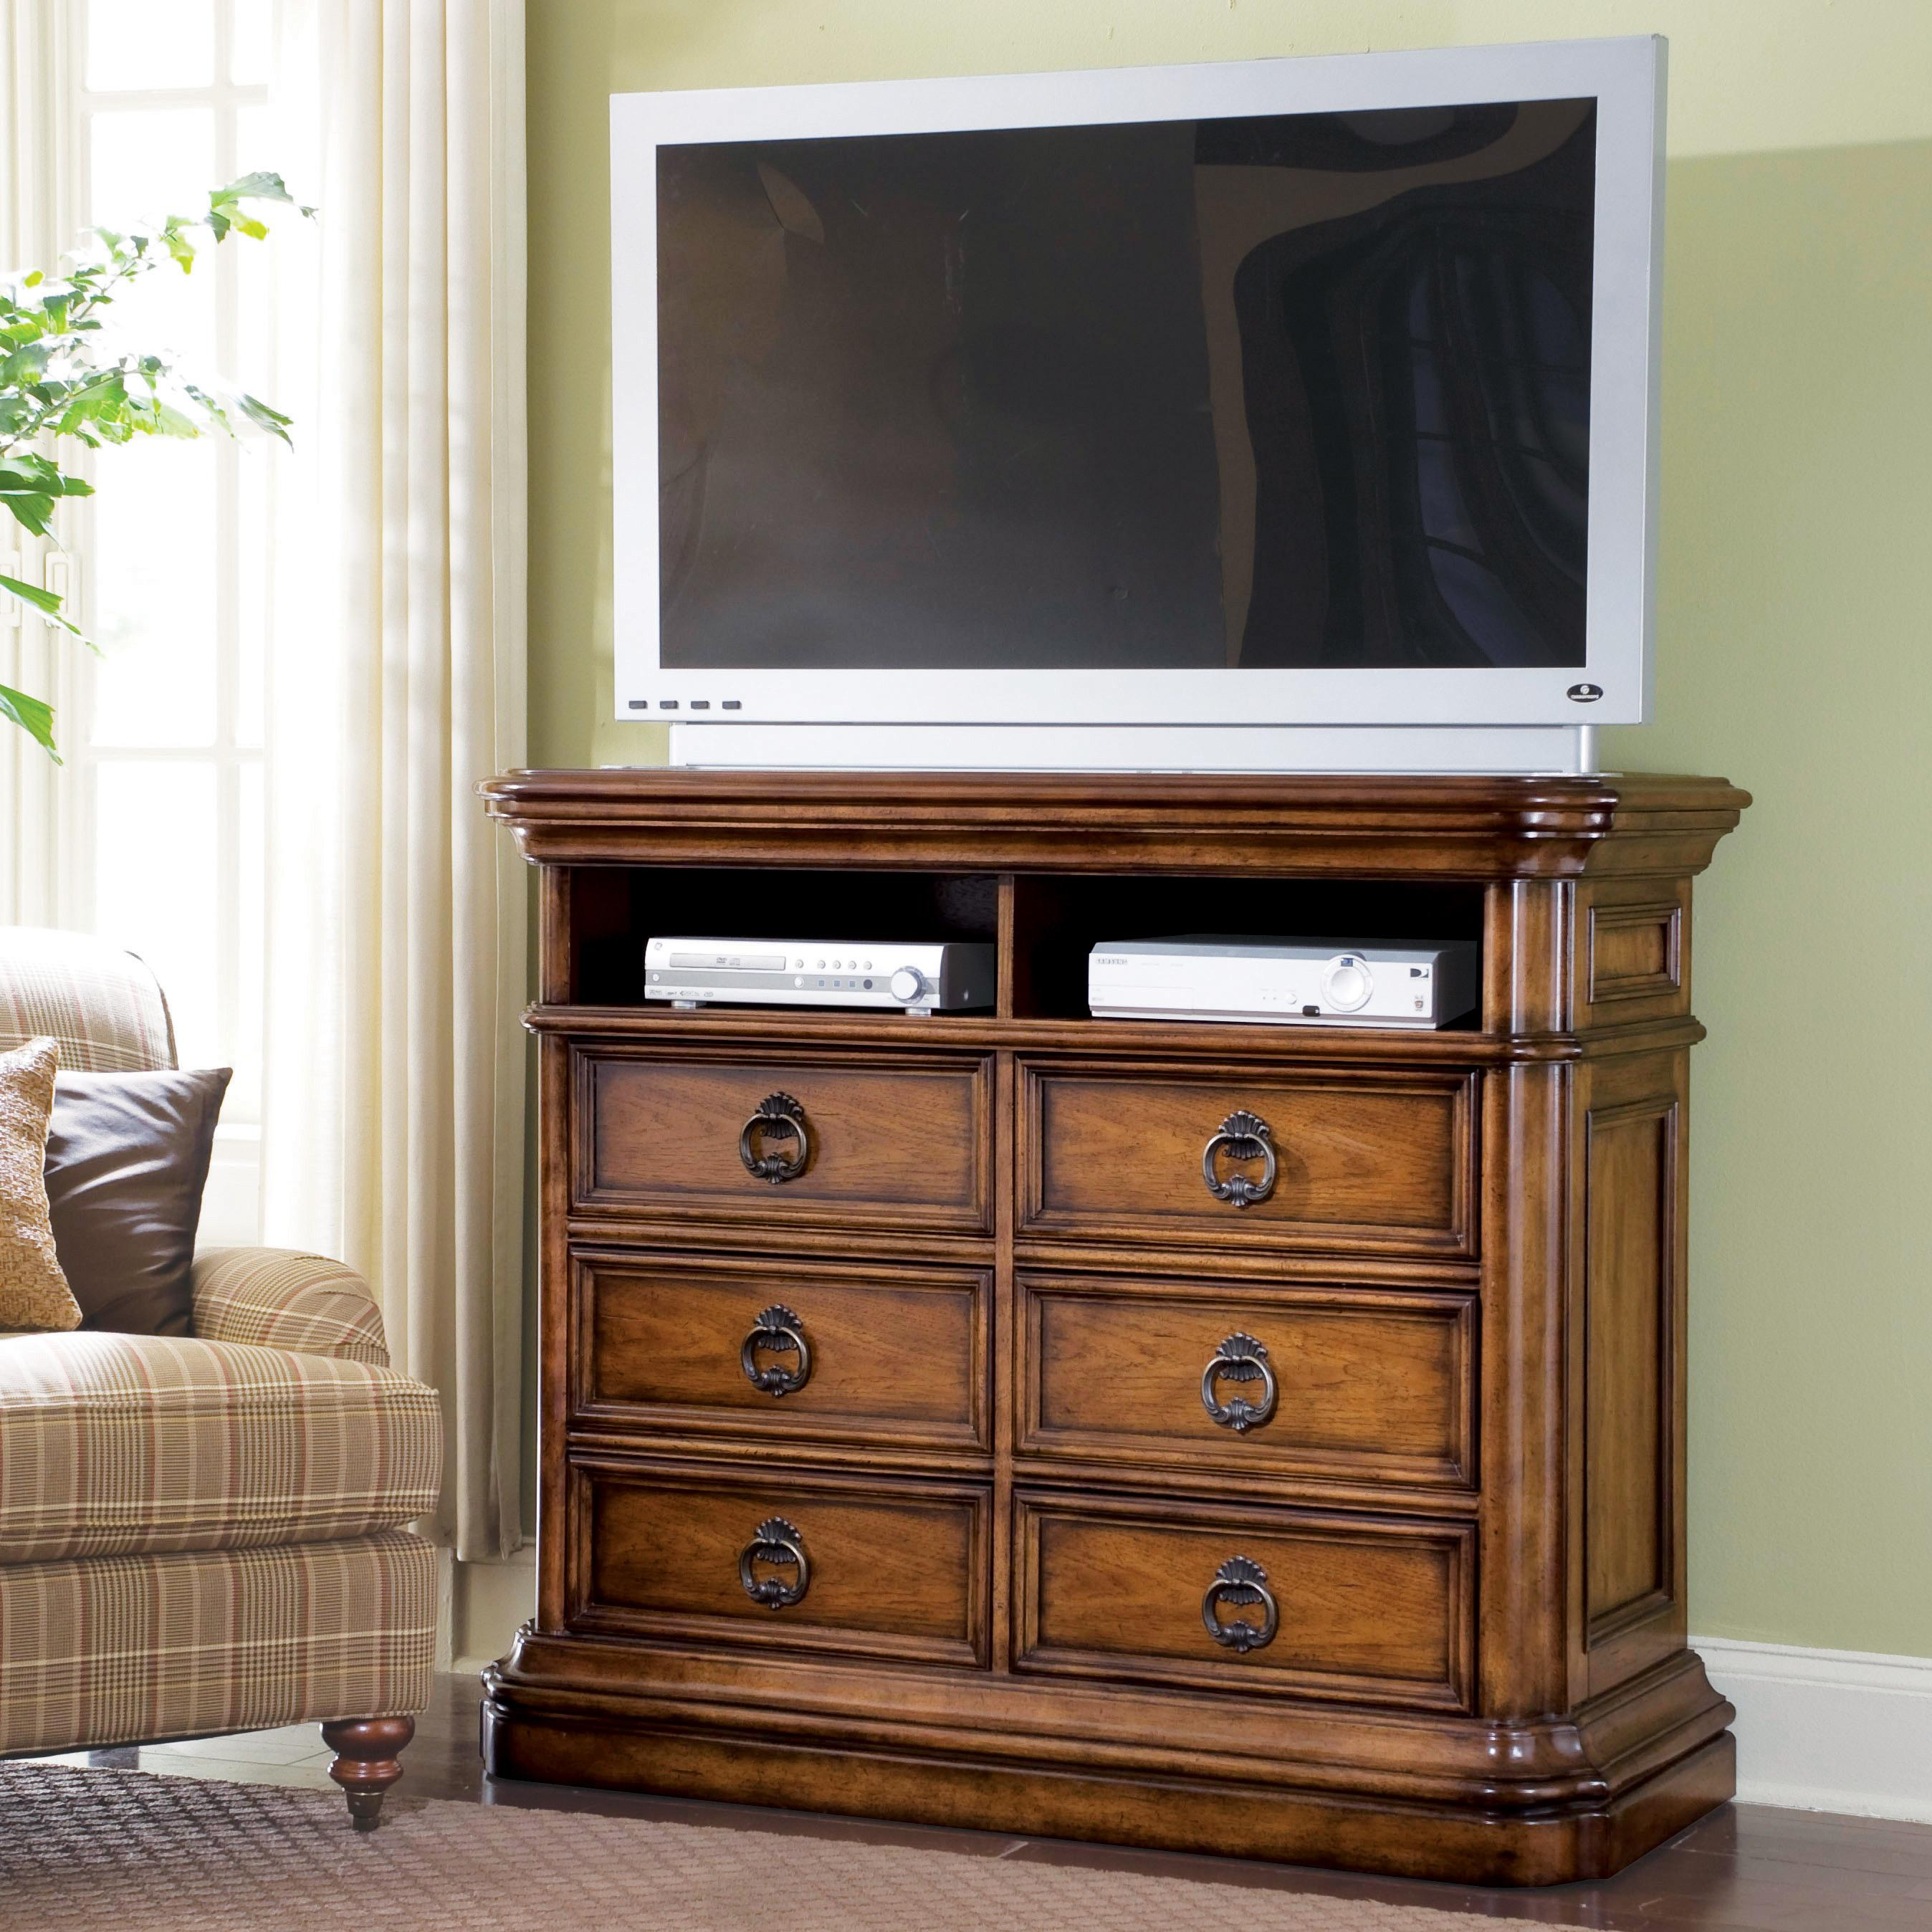 Pulaski furniture san mateo media chest with drawers for Ivan smith furniture